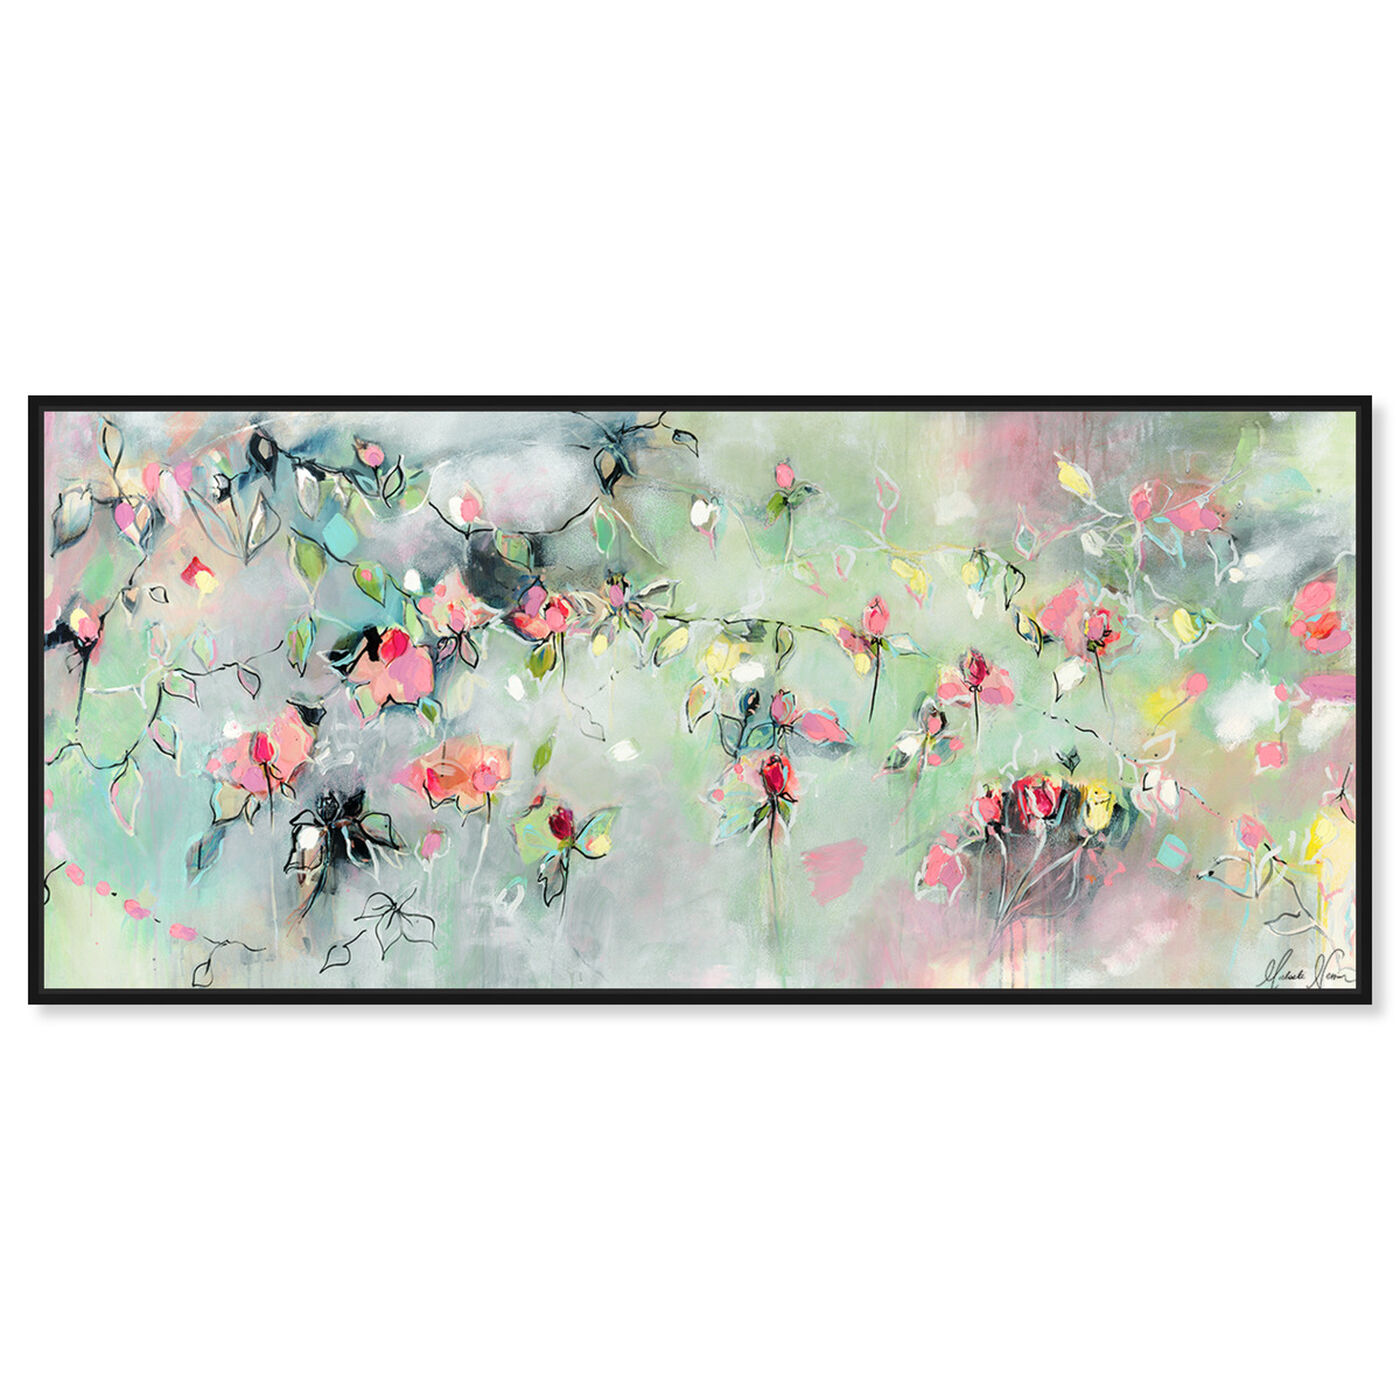 Front view of Appear and Disappear by Michaela Nessim featuring abstract and flowers art.